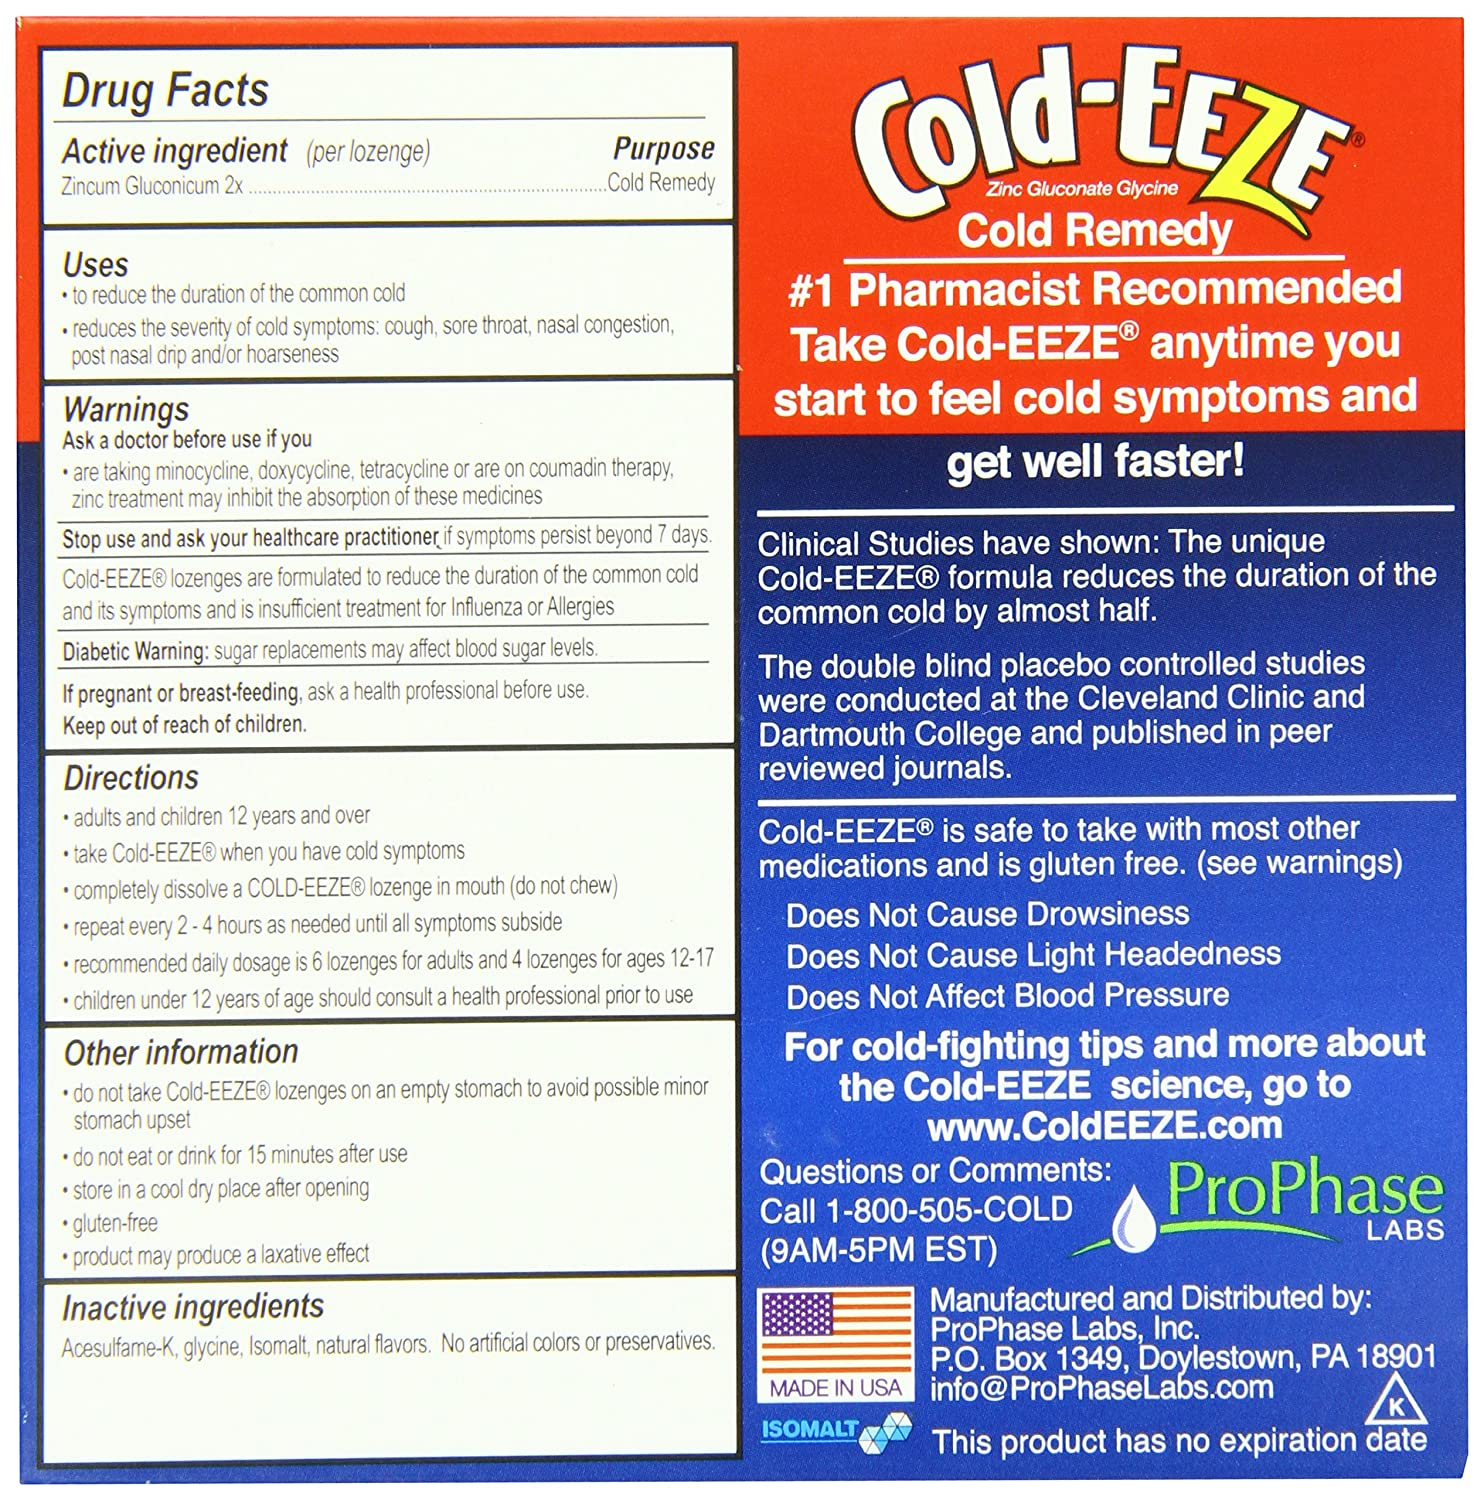 Cold-Eeze Cold Eeze Cold Remedy All Natural Cherry Flavor 18 Lozenges - 1  Pack